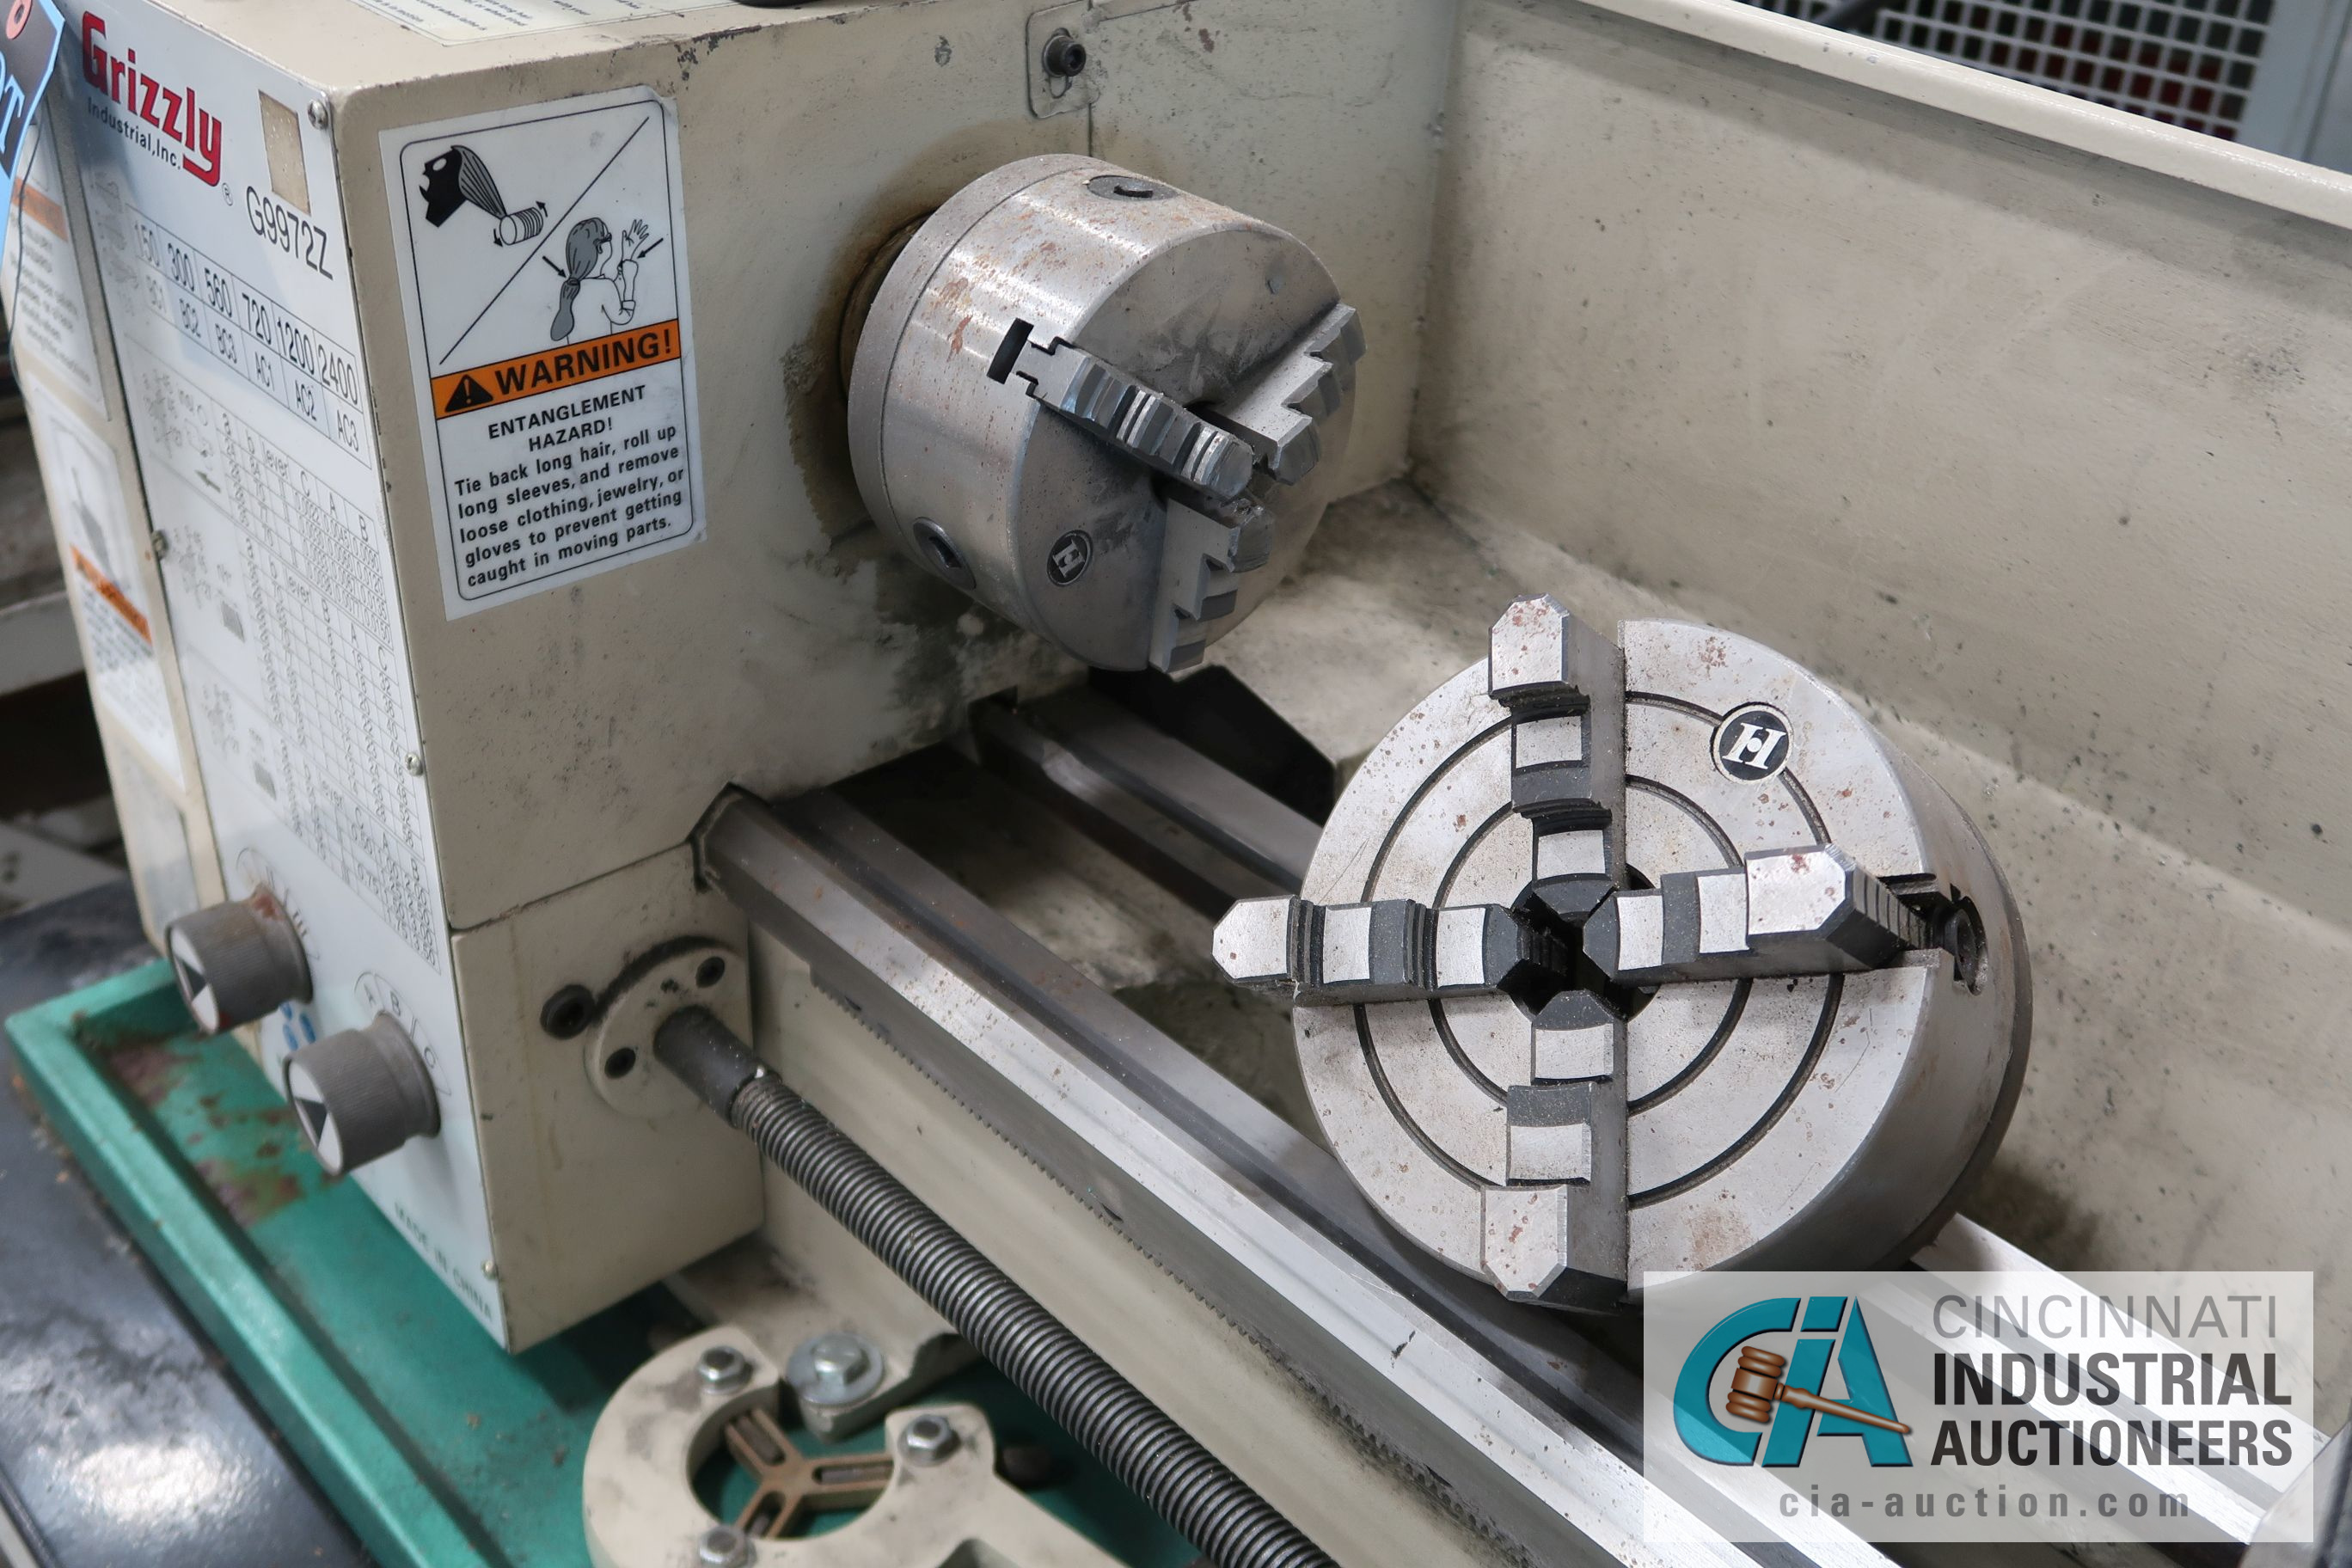 "11"" X 26"" GRIZZLY MODEL G9972Z MILO SIZE BENCH TOP LATHE; S/N 2011482 (2011), 110 VOLT, WITH WORK - Image 3 of 5"